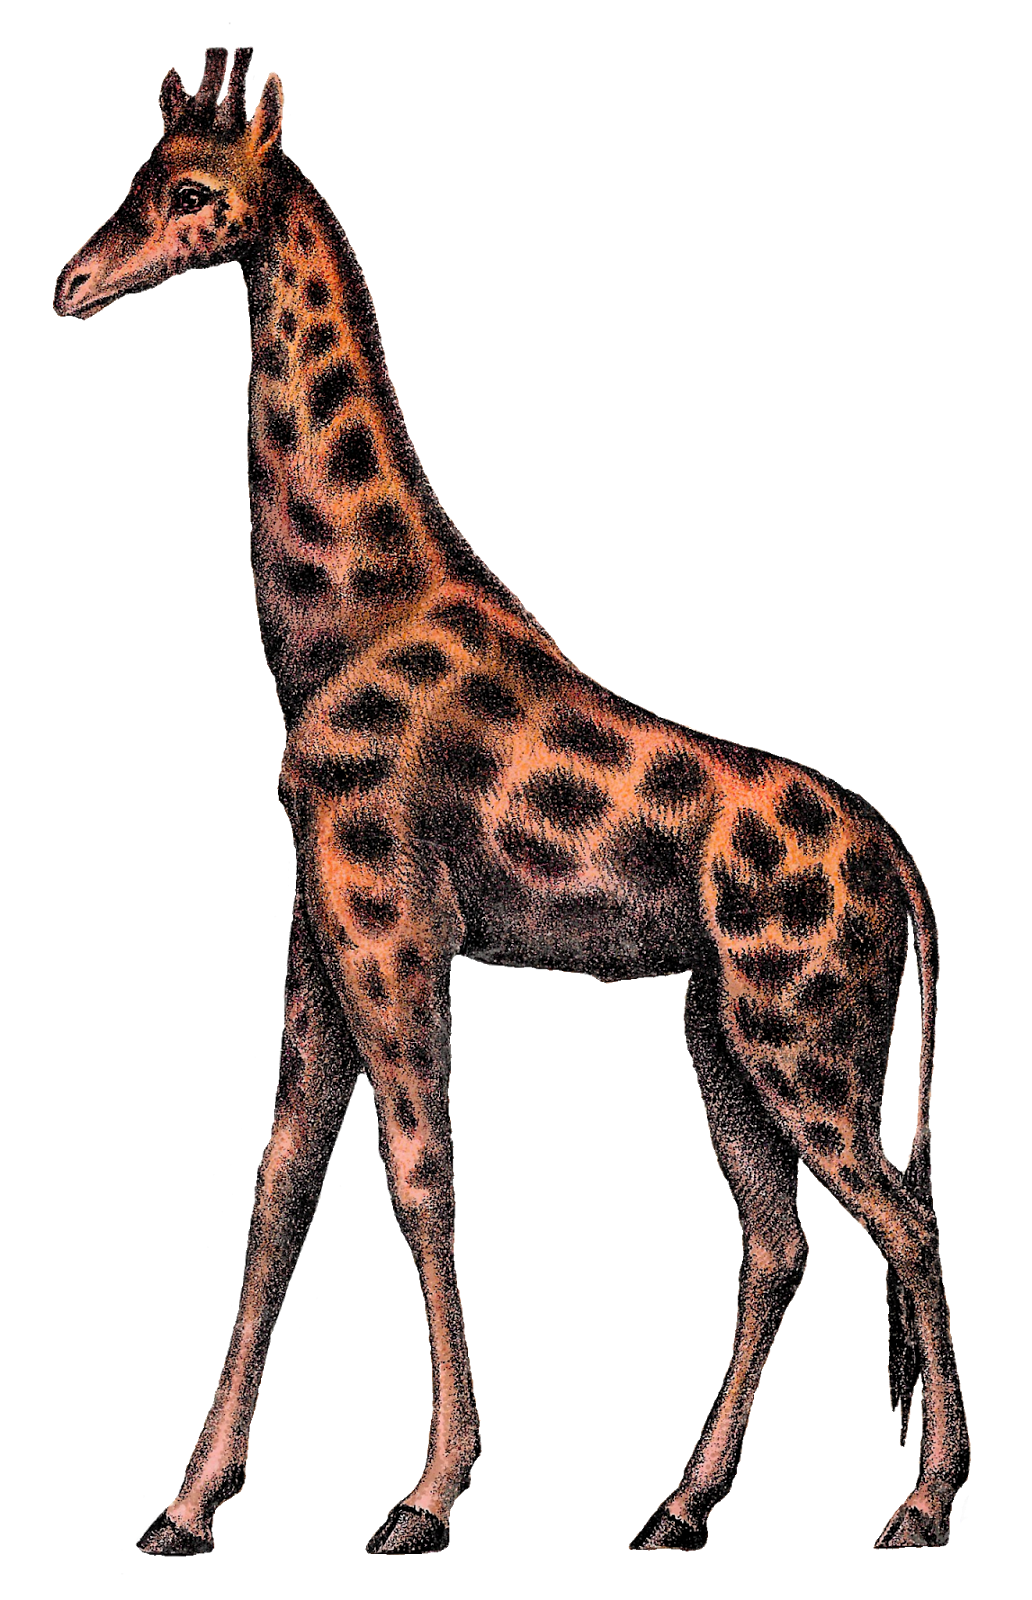 Antique images vintage digital. Giraffe clipart terrestrial animal